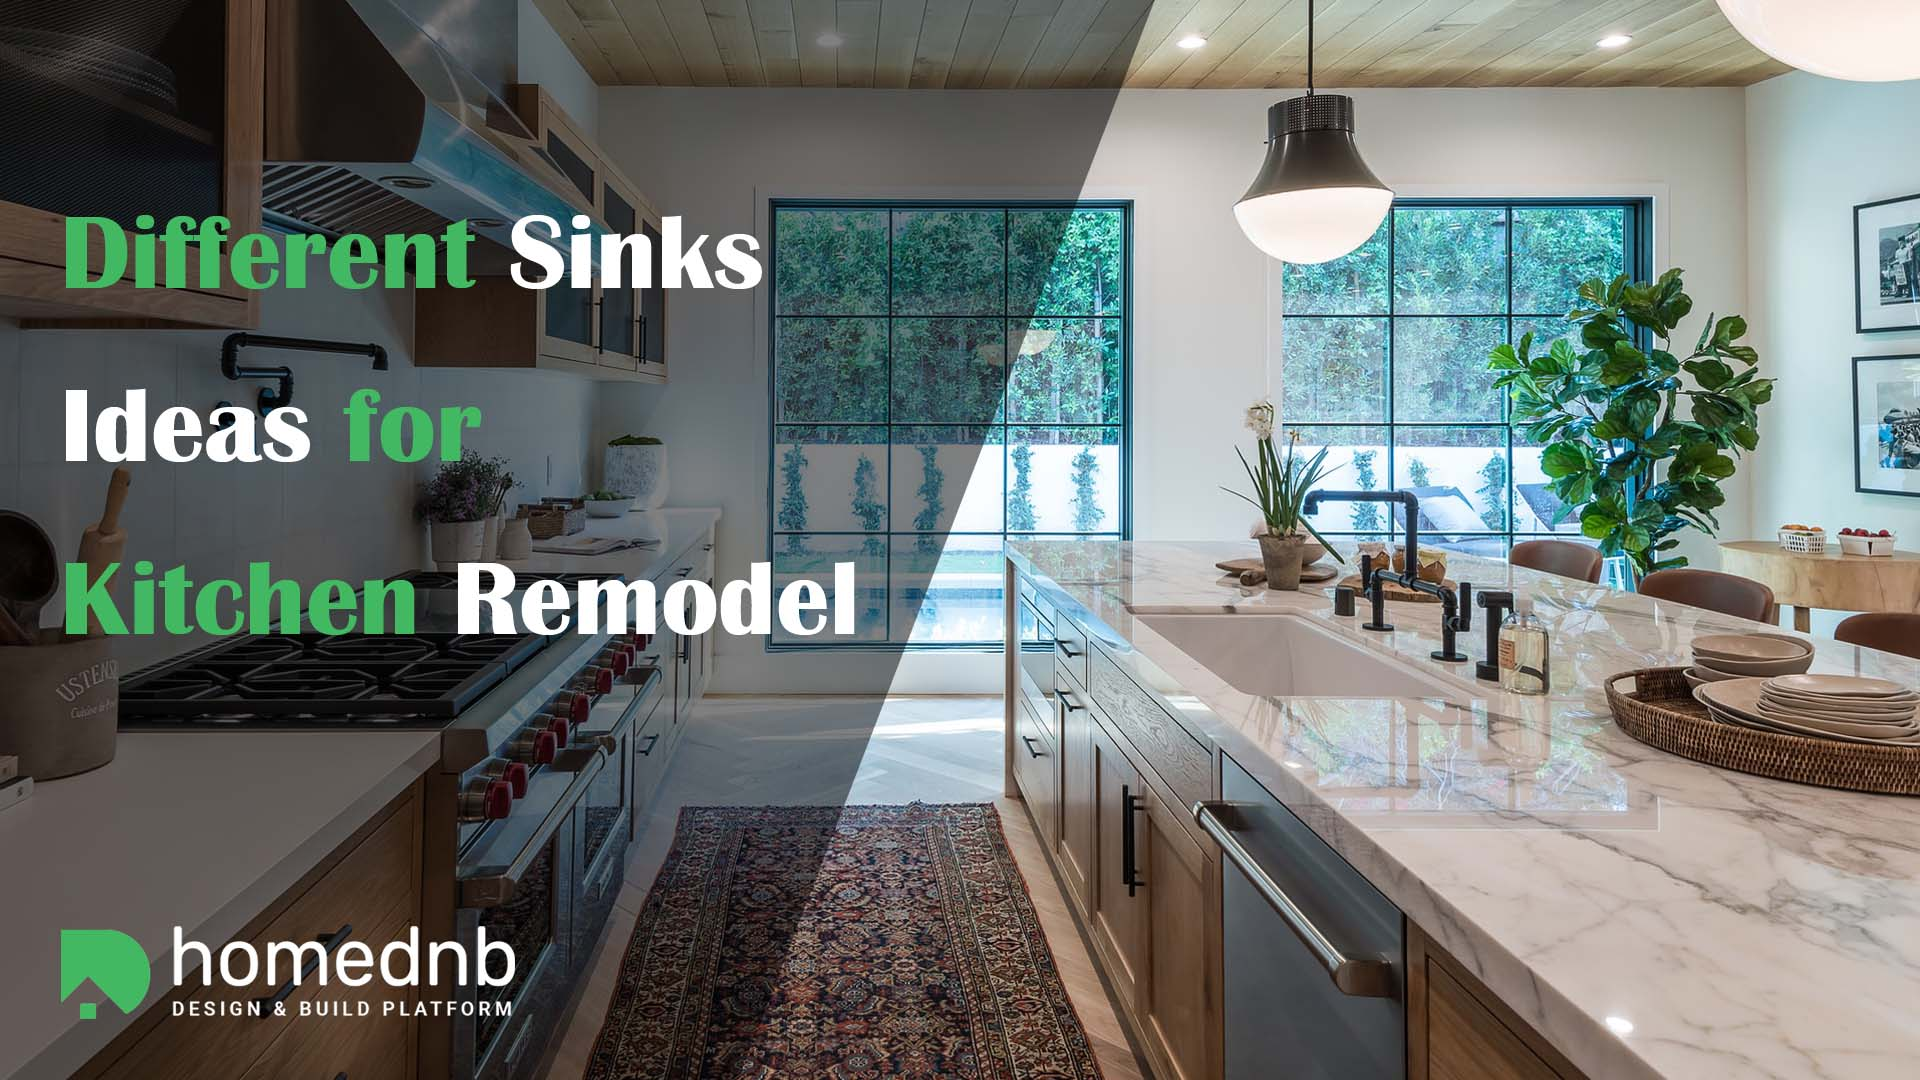 Different Sinks Ideas for Kitchen Remodel